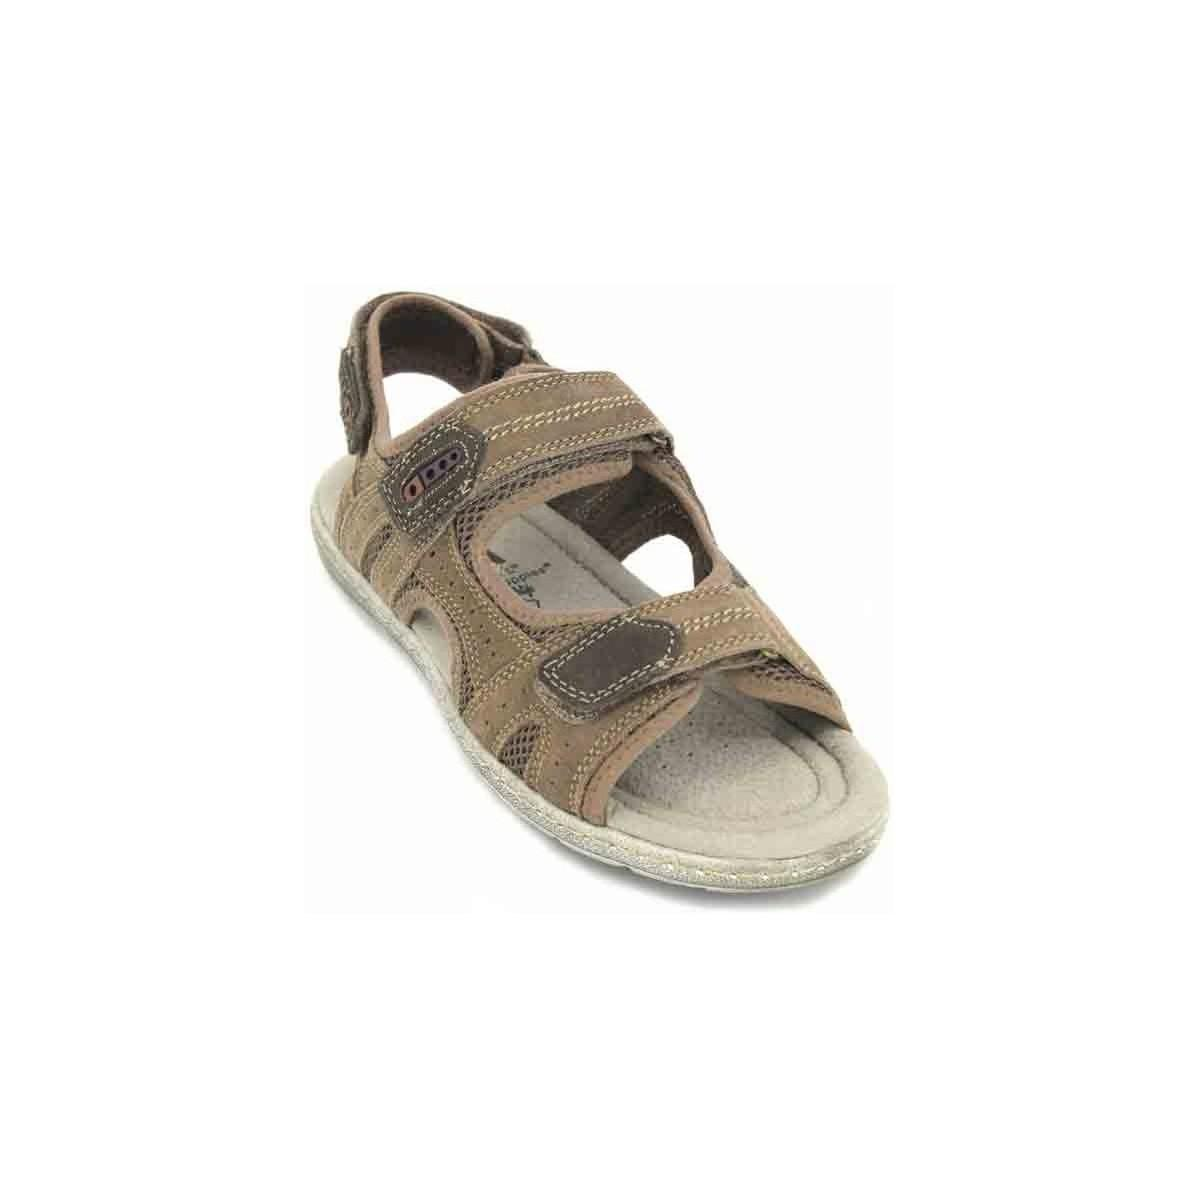 642131e12a9 Hush Puppies Rafael 624940 Sandals For Men Men s Sandals In Beige in ...